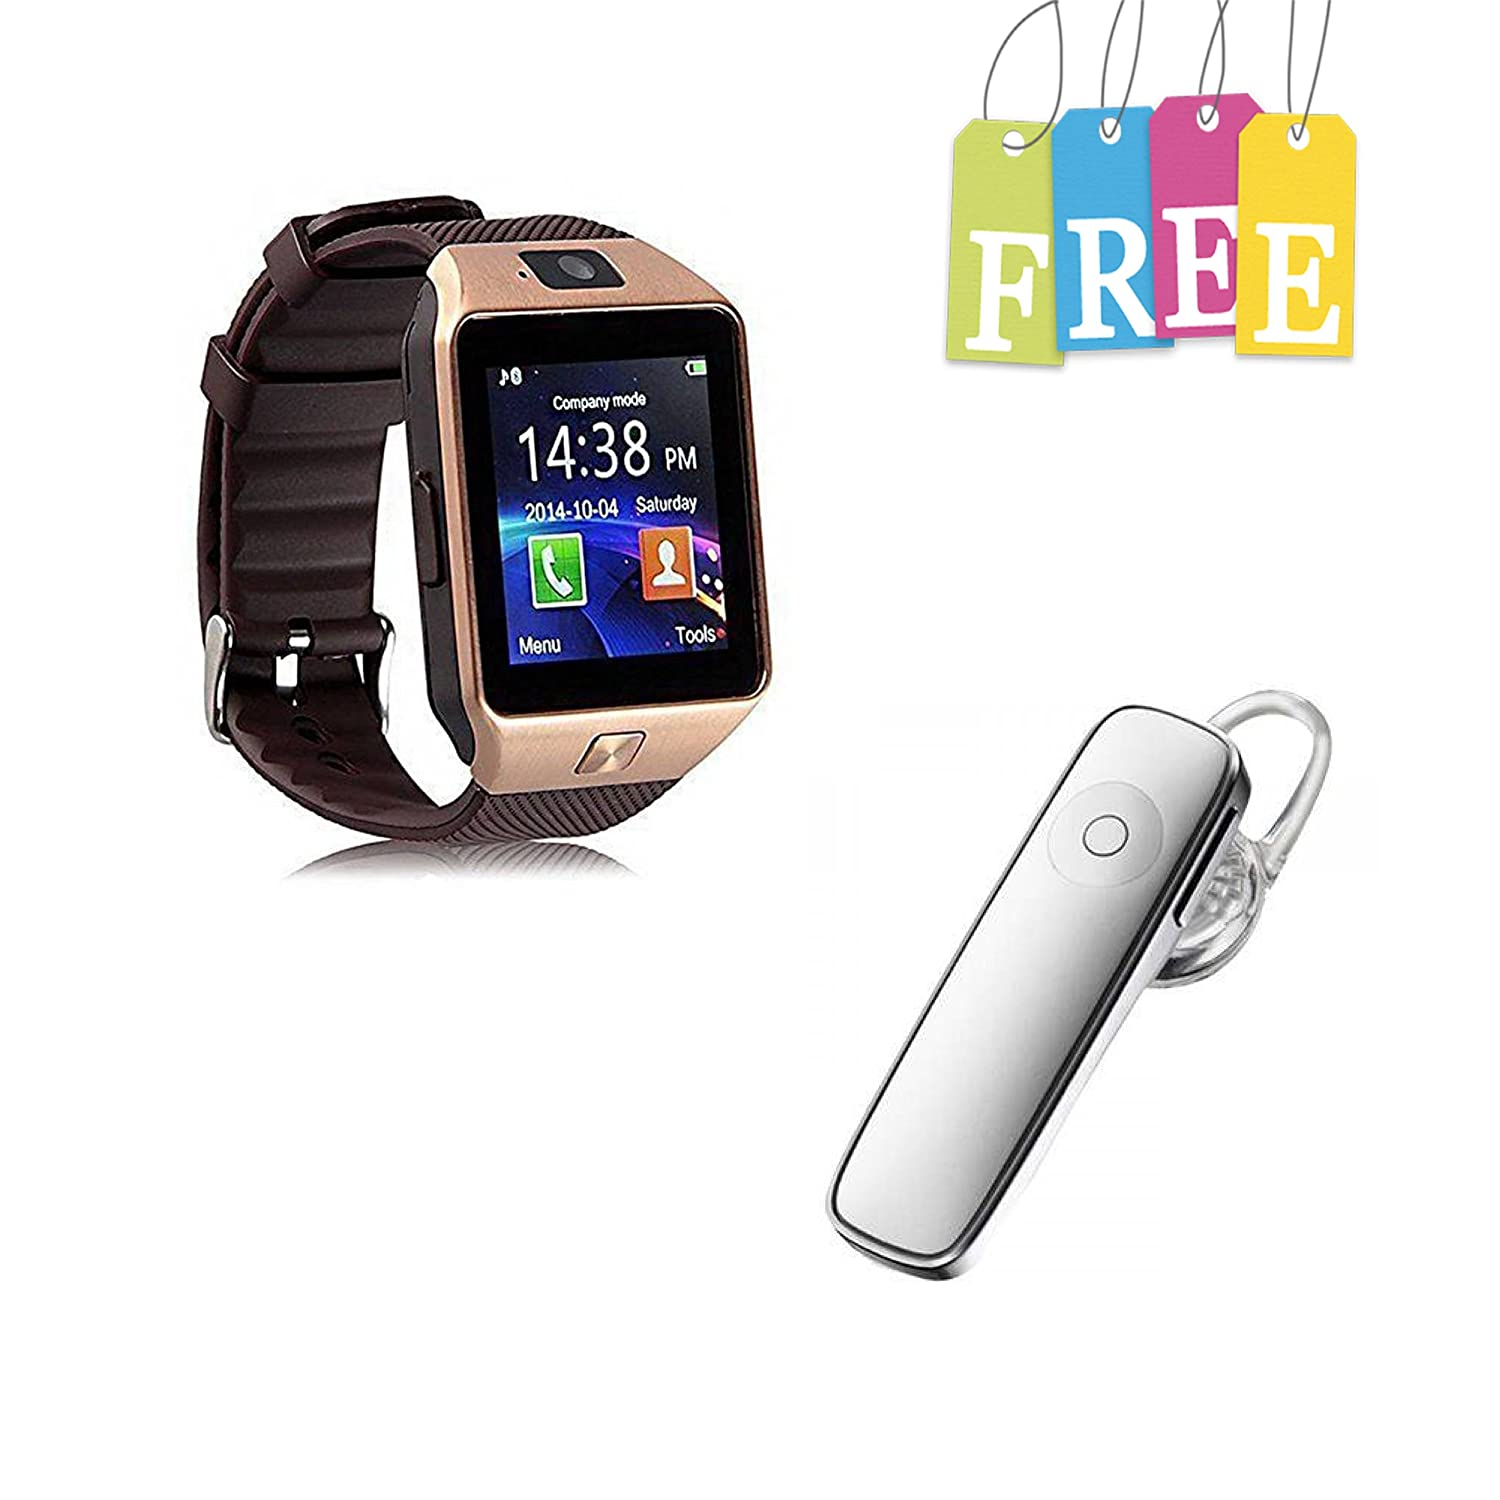 Padraig Redmi 4G Compatible Bluetooth DZ09 Wrist Watch Phone with Camera & SIM Card Support Smartwatch(Brown Strap free) With Bluetooth (v4.0) Headset Wireless Headphone With Mic (White, In the Ear)